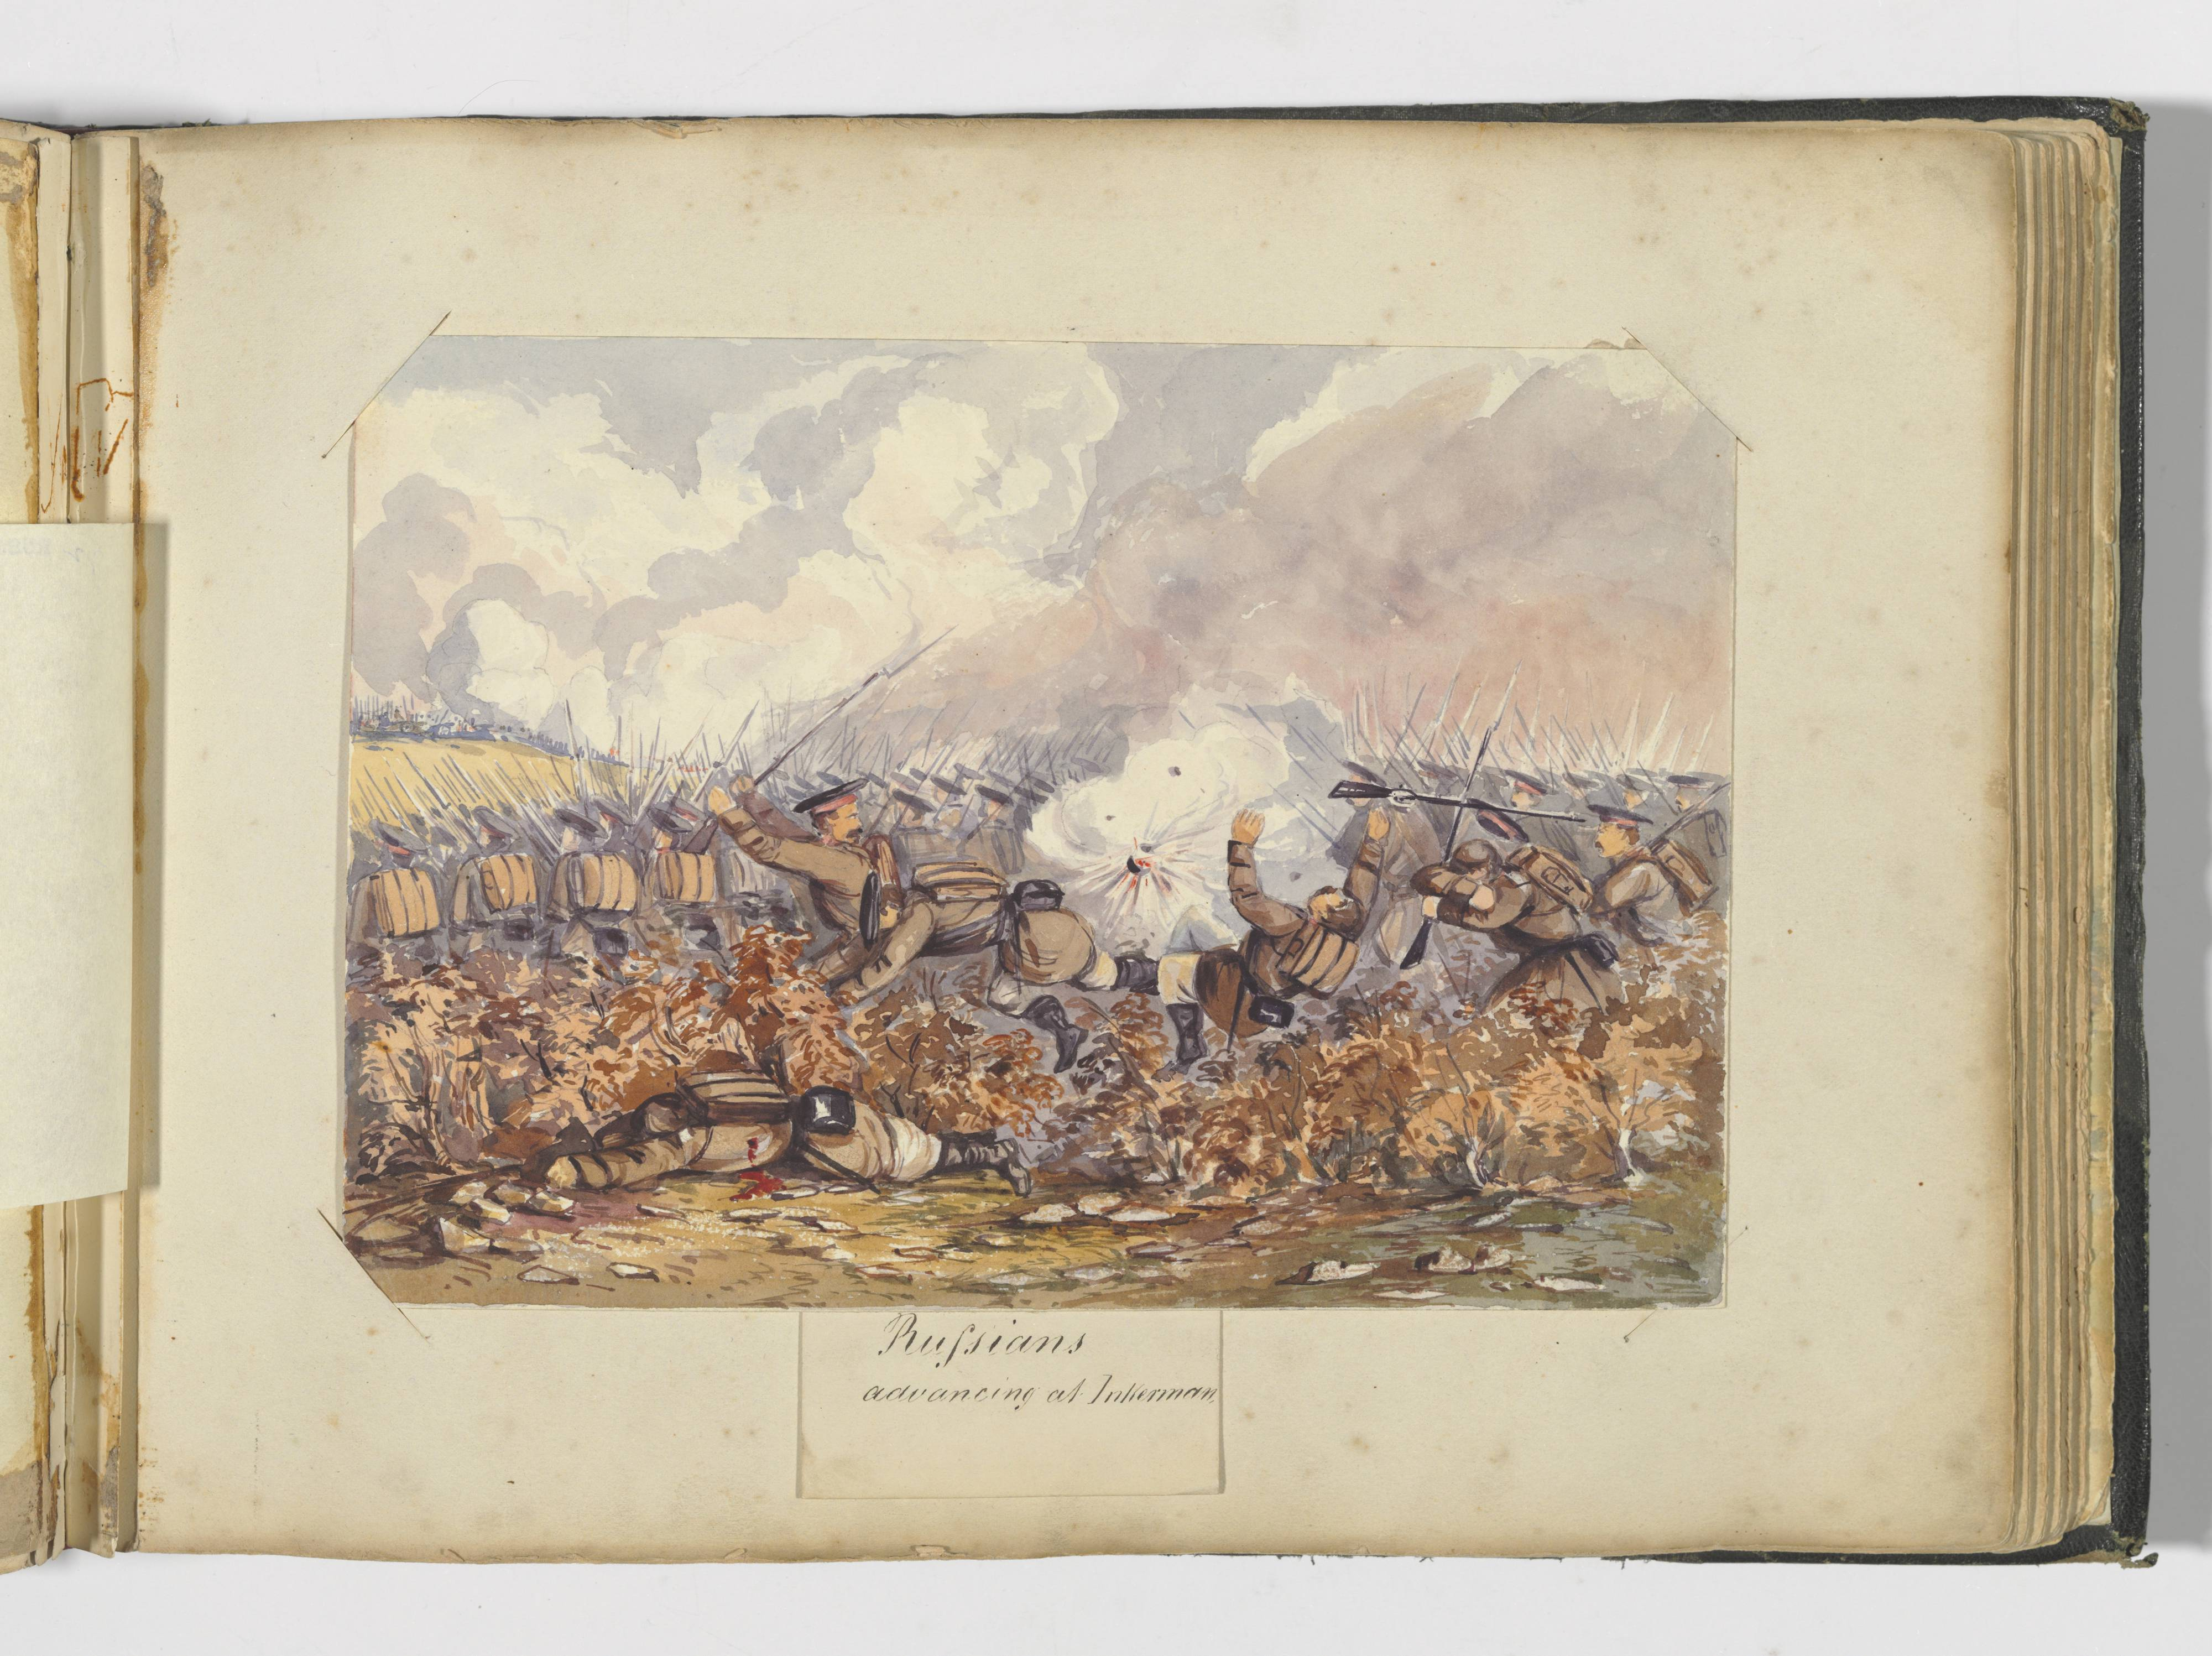 Watercolour painting. A battle scene showing troops marching into battle with bayonets. One man lies bleeding in the foreground while others are blown off their feet by an exploding shell.